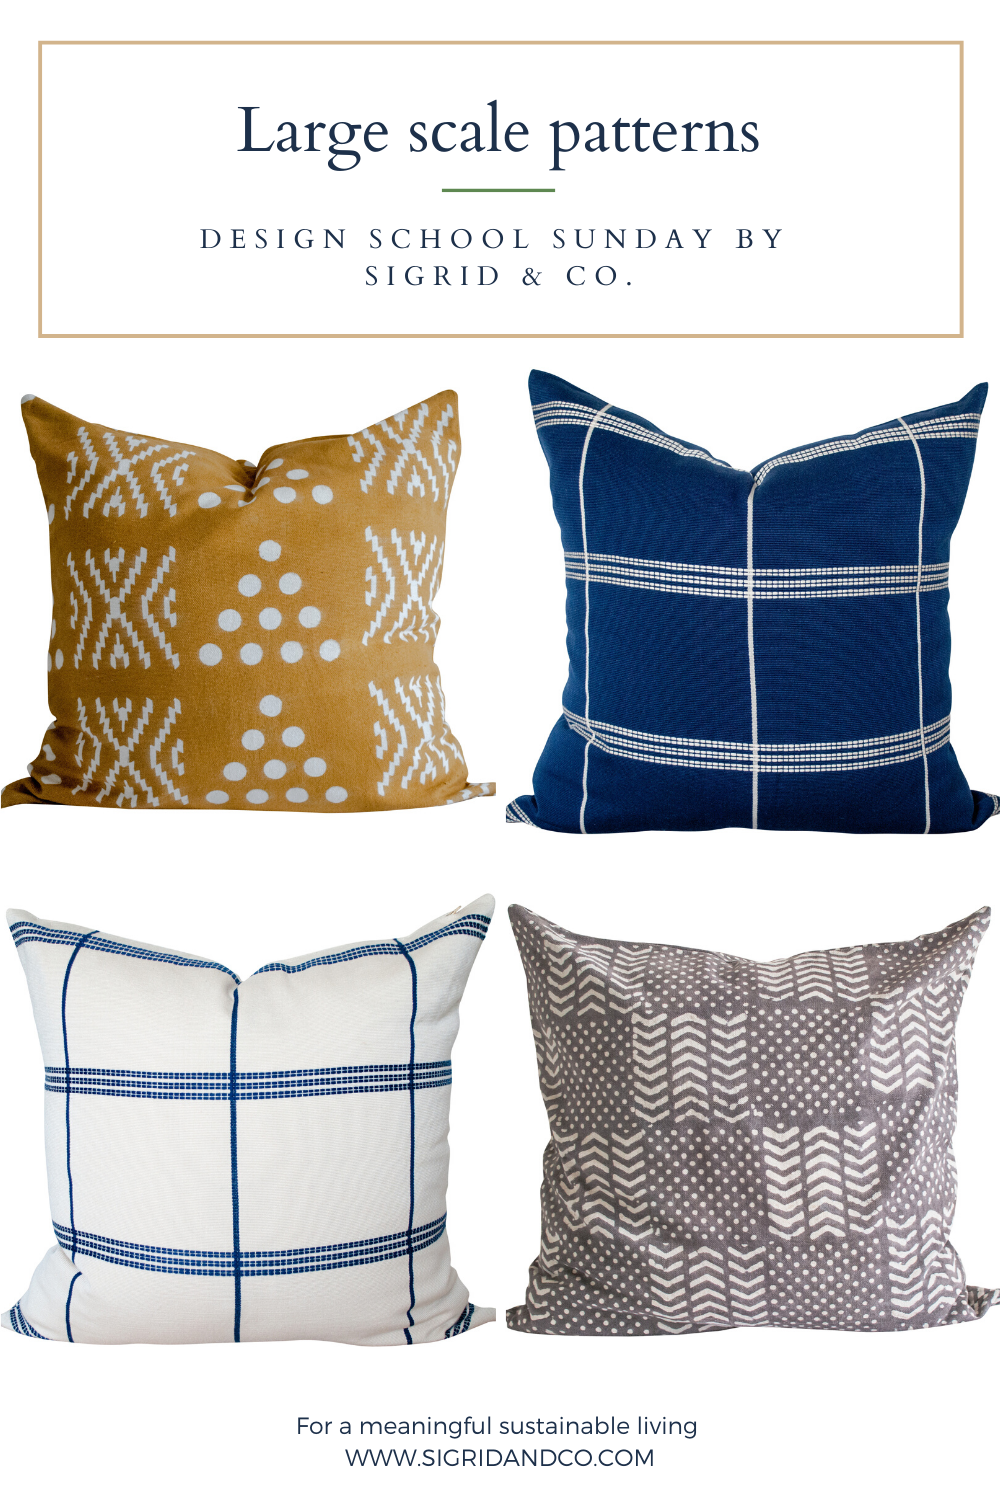 How to Mx and Match your Pillows like a Designer